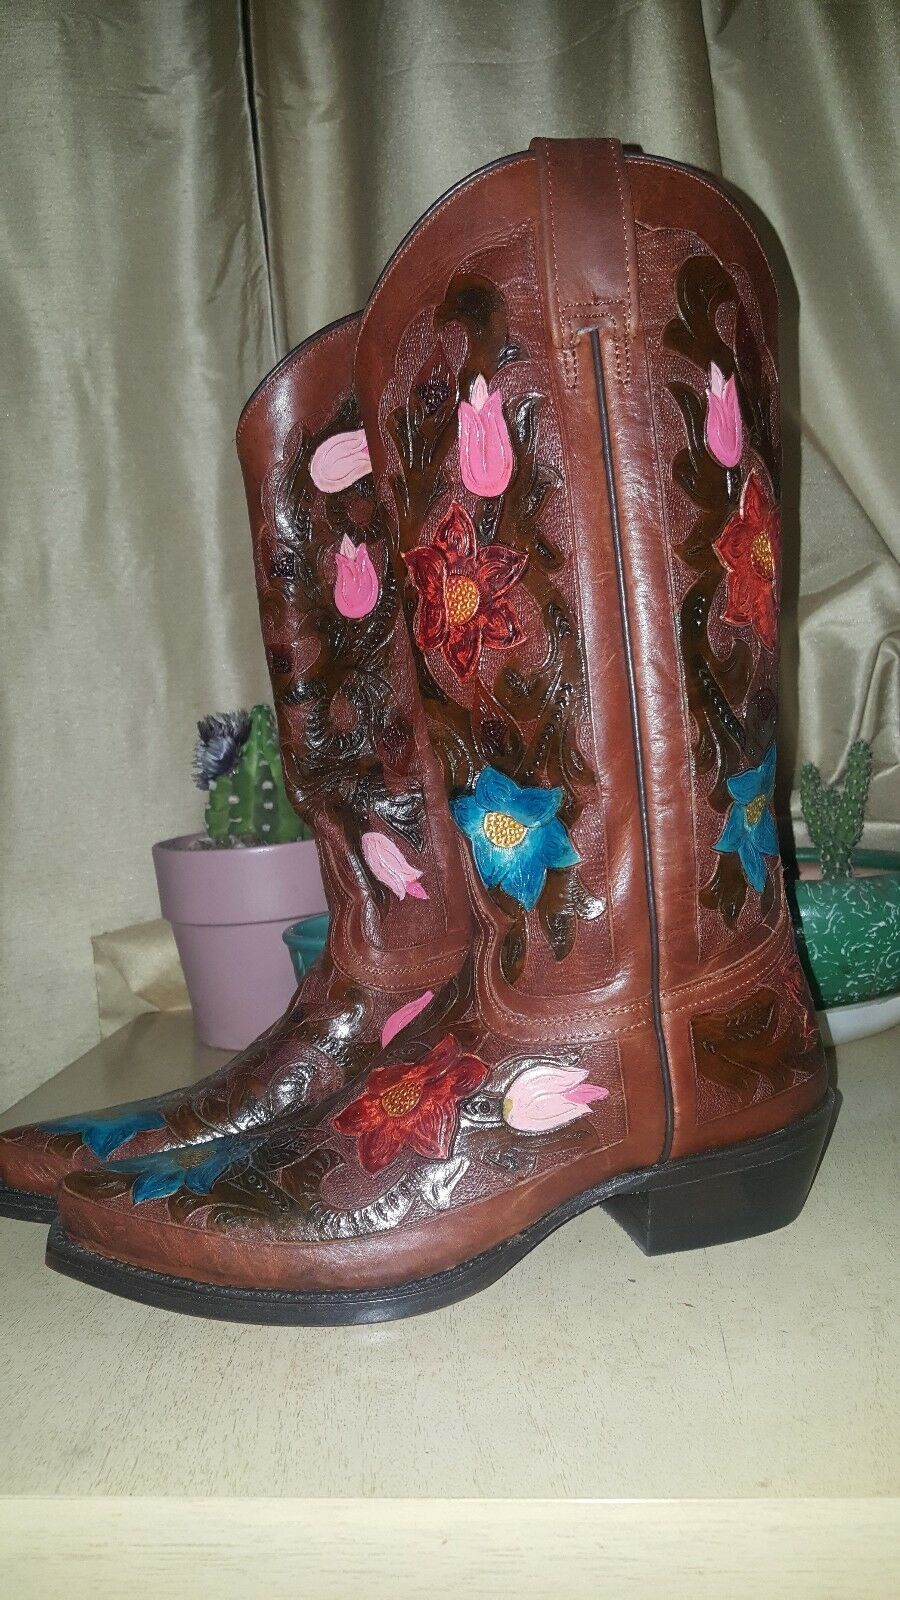 JACA  WESTERN Stiefel Stiefel WESTERN HAND-TOOLED Hand painted FLOWERS WO Herren size 7 f0430d